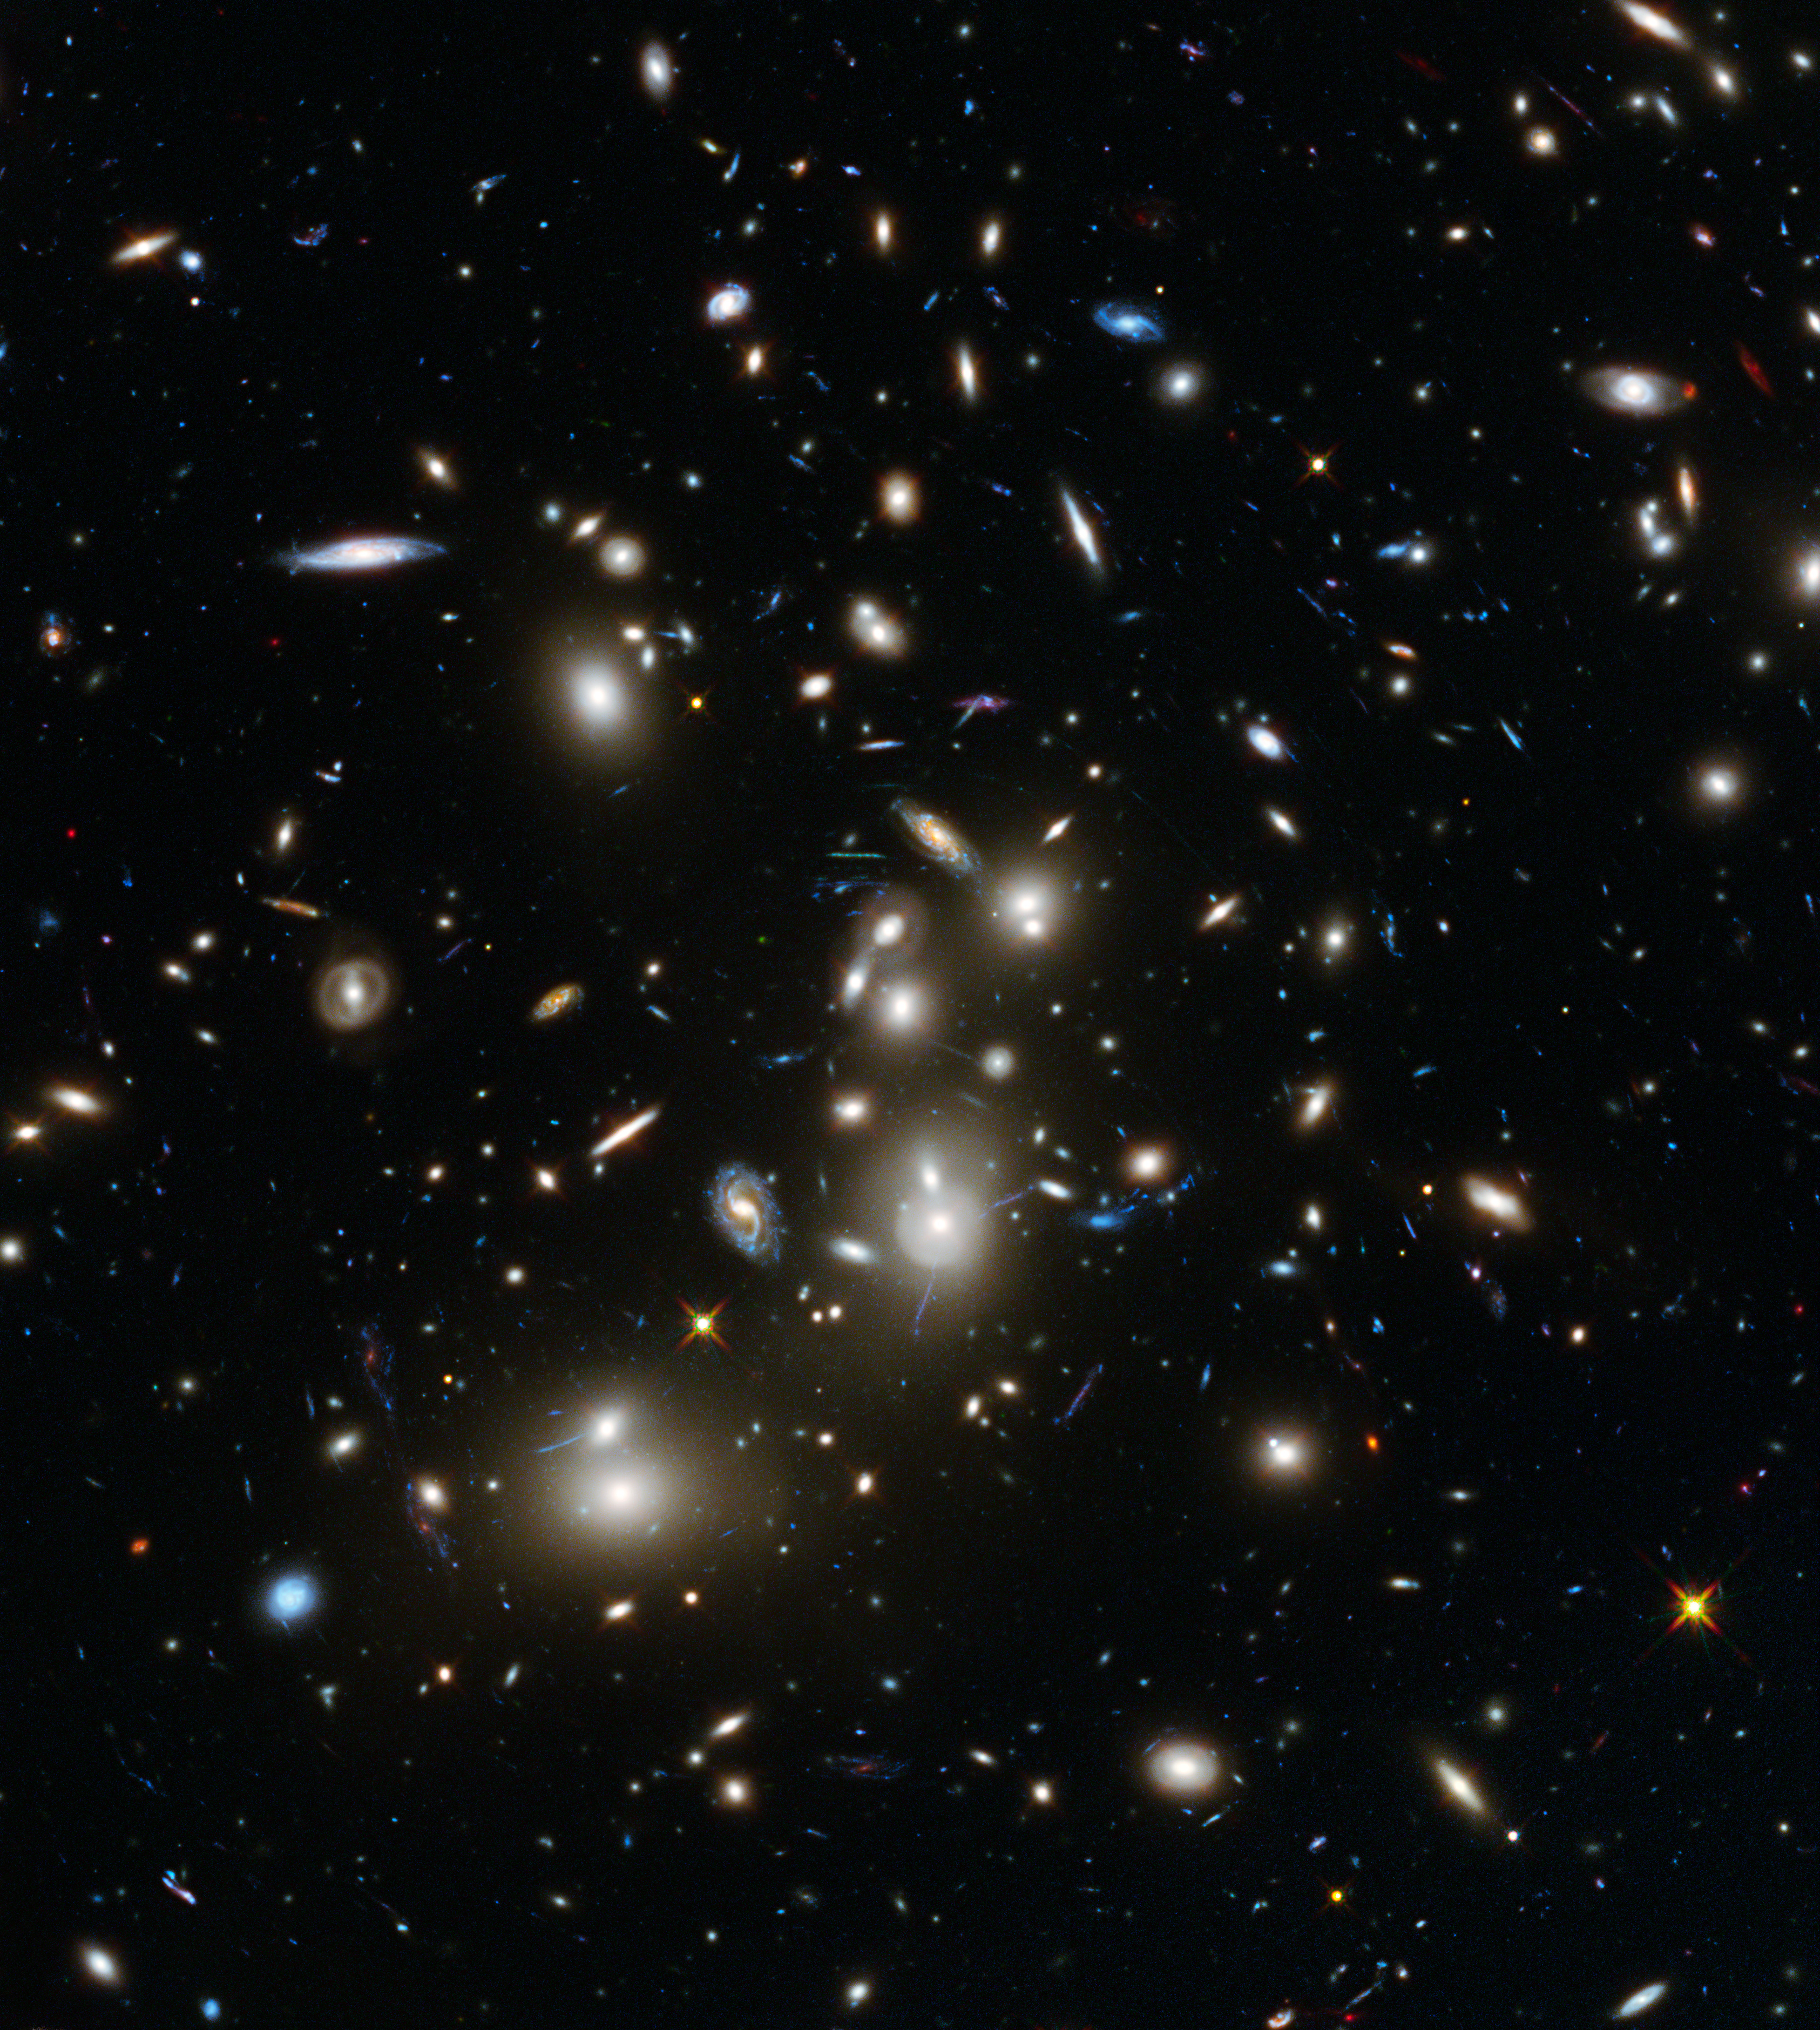 Galaxy cluster. Photo from Wikipedia